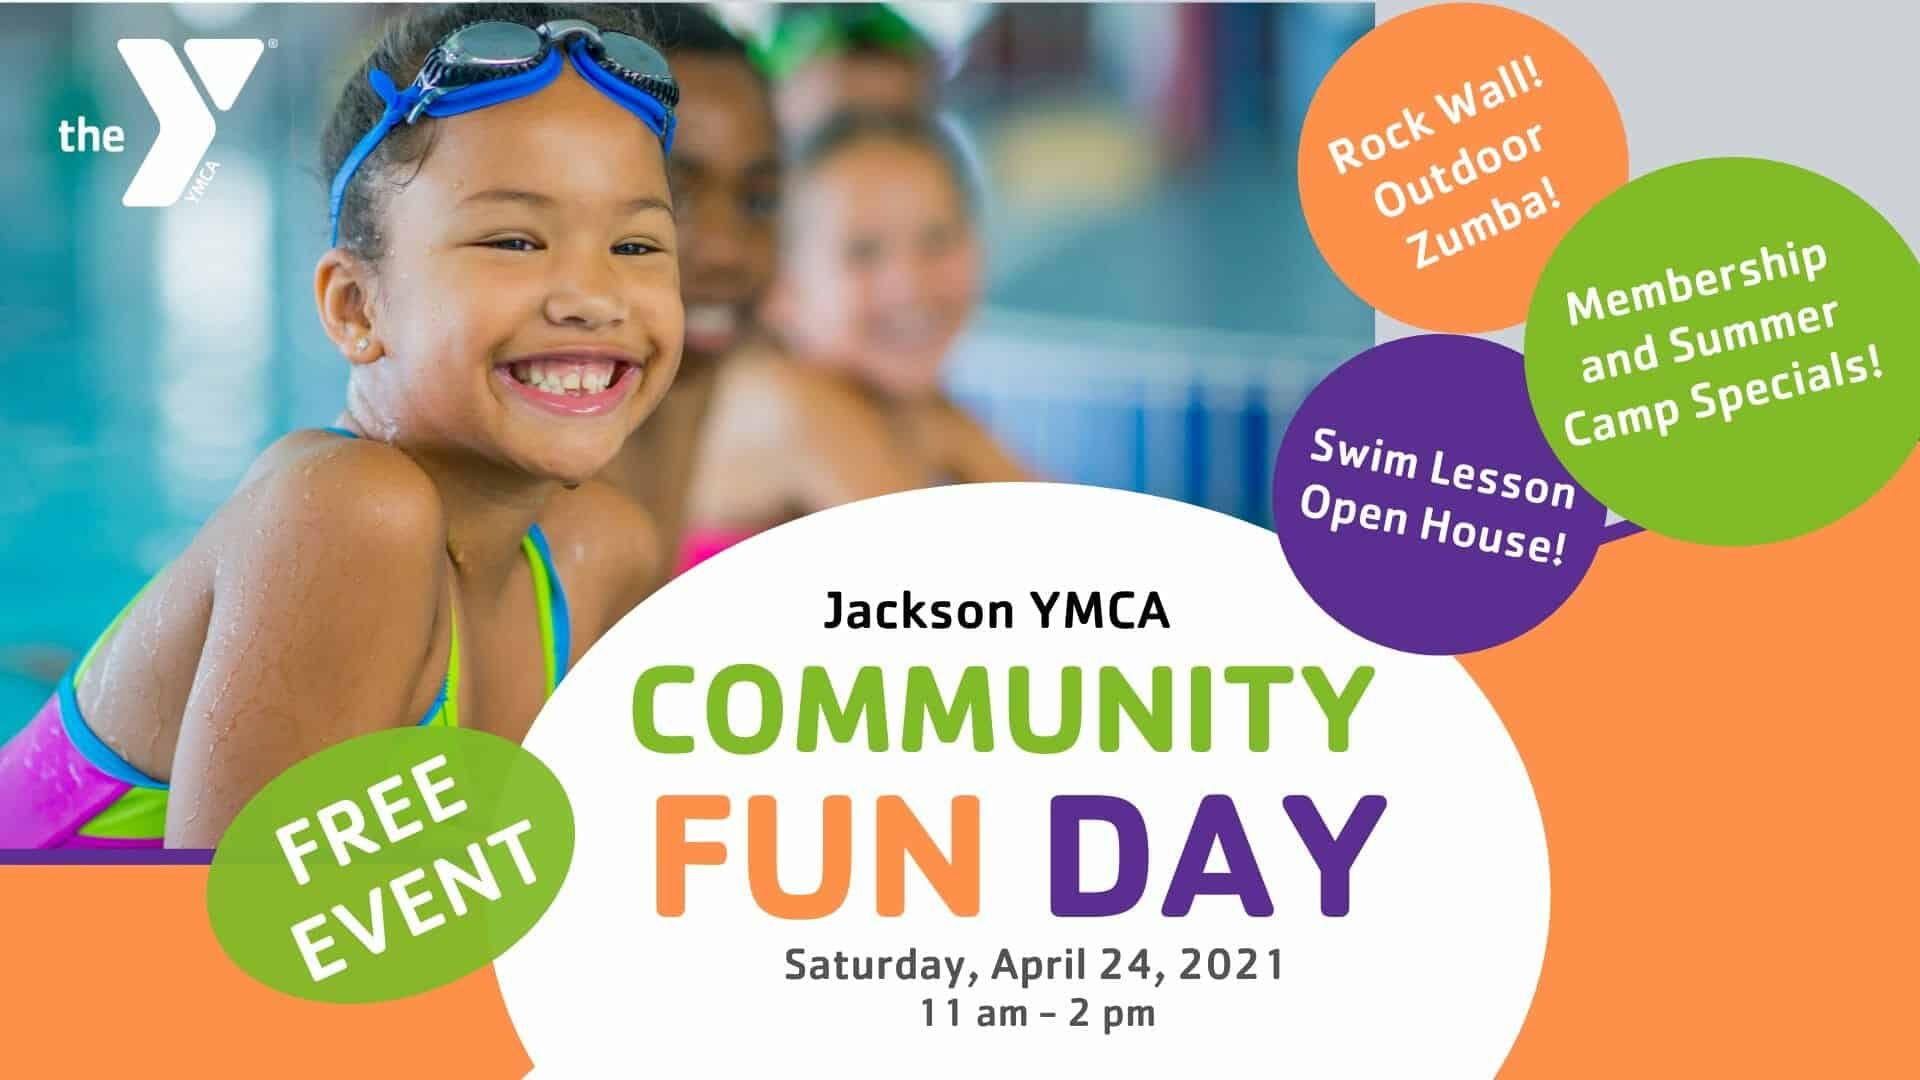 Community Fun Day JYMCA